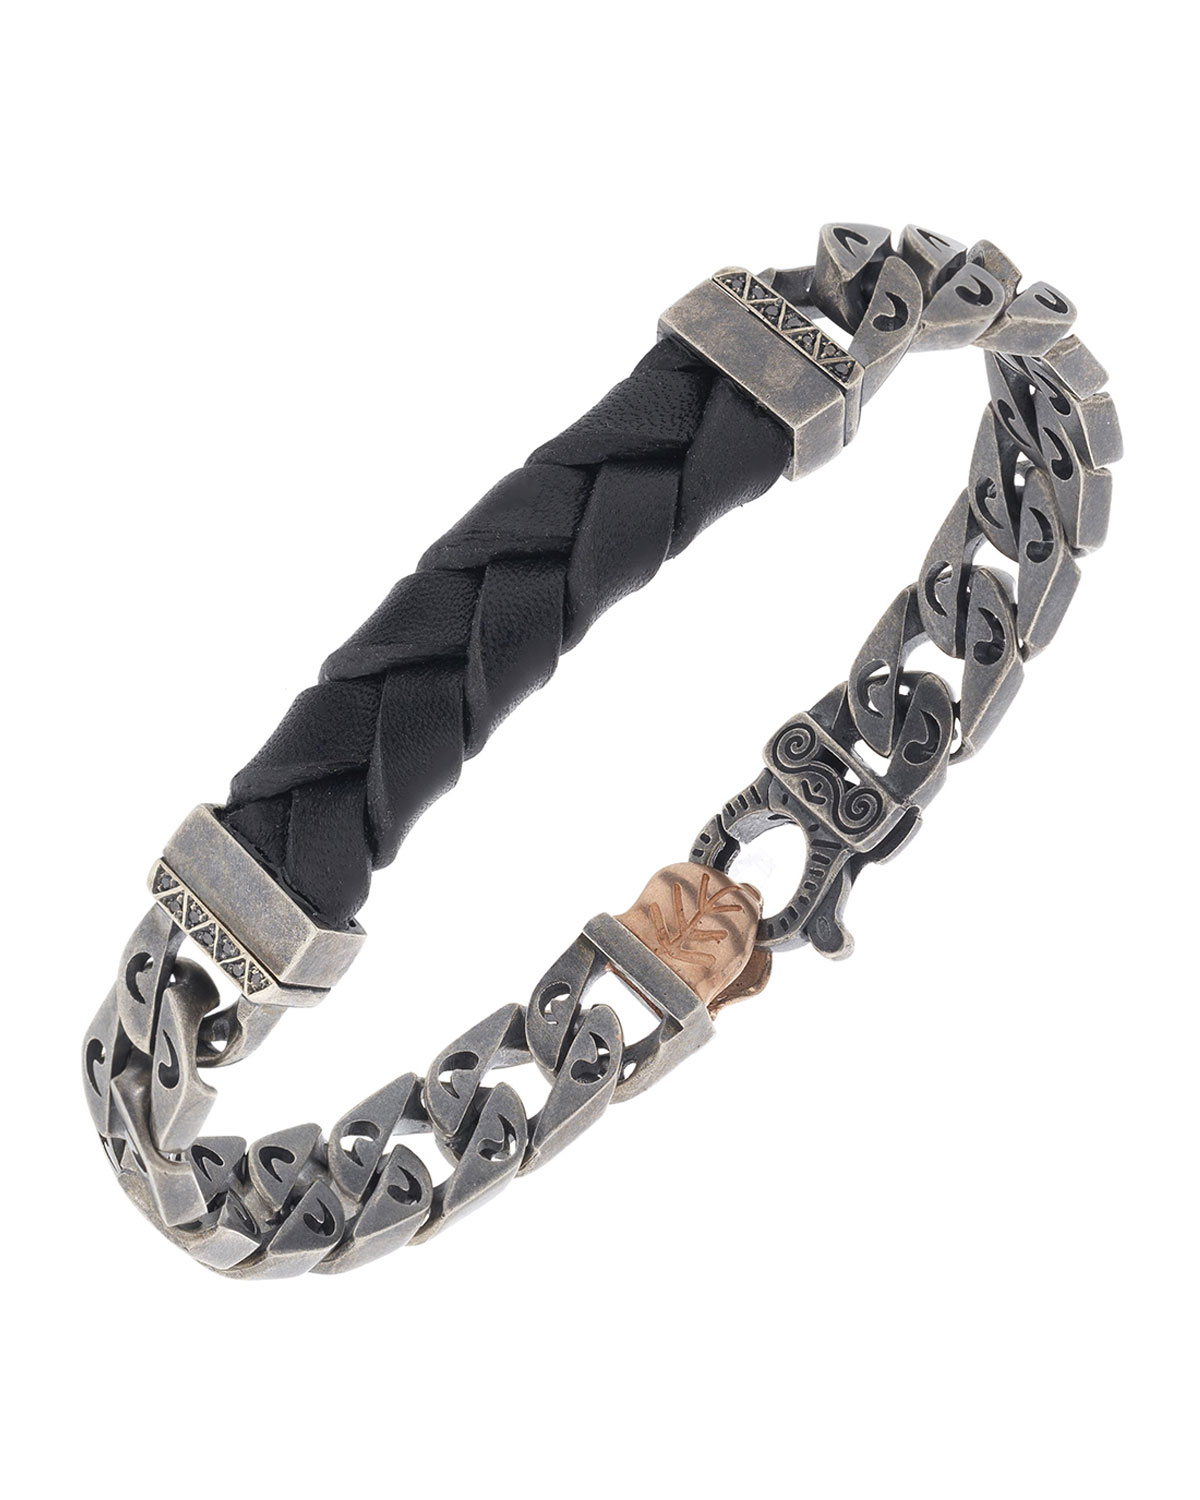 Men's Woven Leather/Silver Chain Bracelet w/ 18k Gold-Plated Clasp